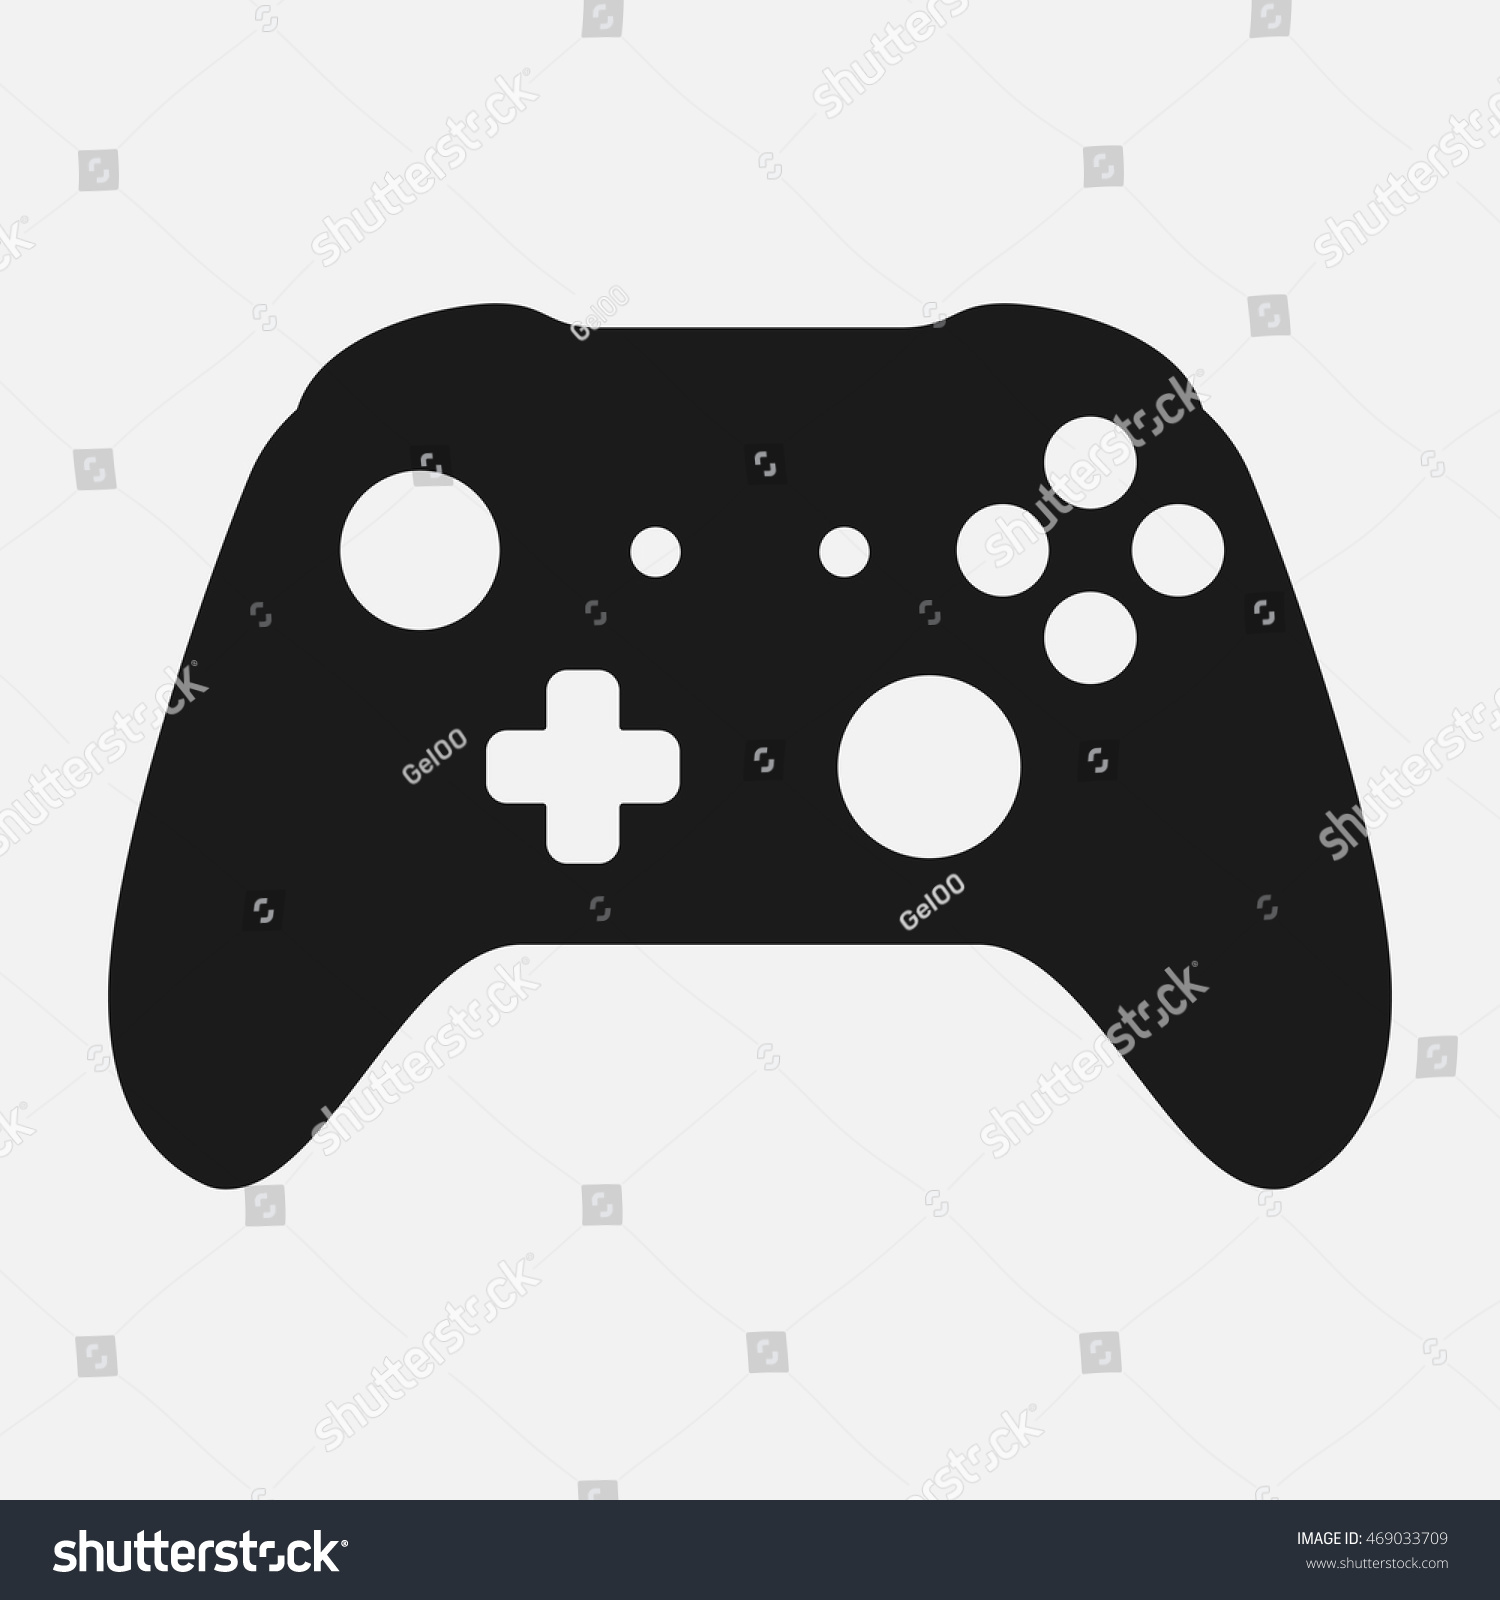 Game Controller Icon Vector | www.imgkid.com - The Image ...